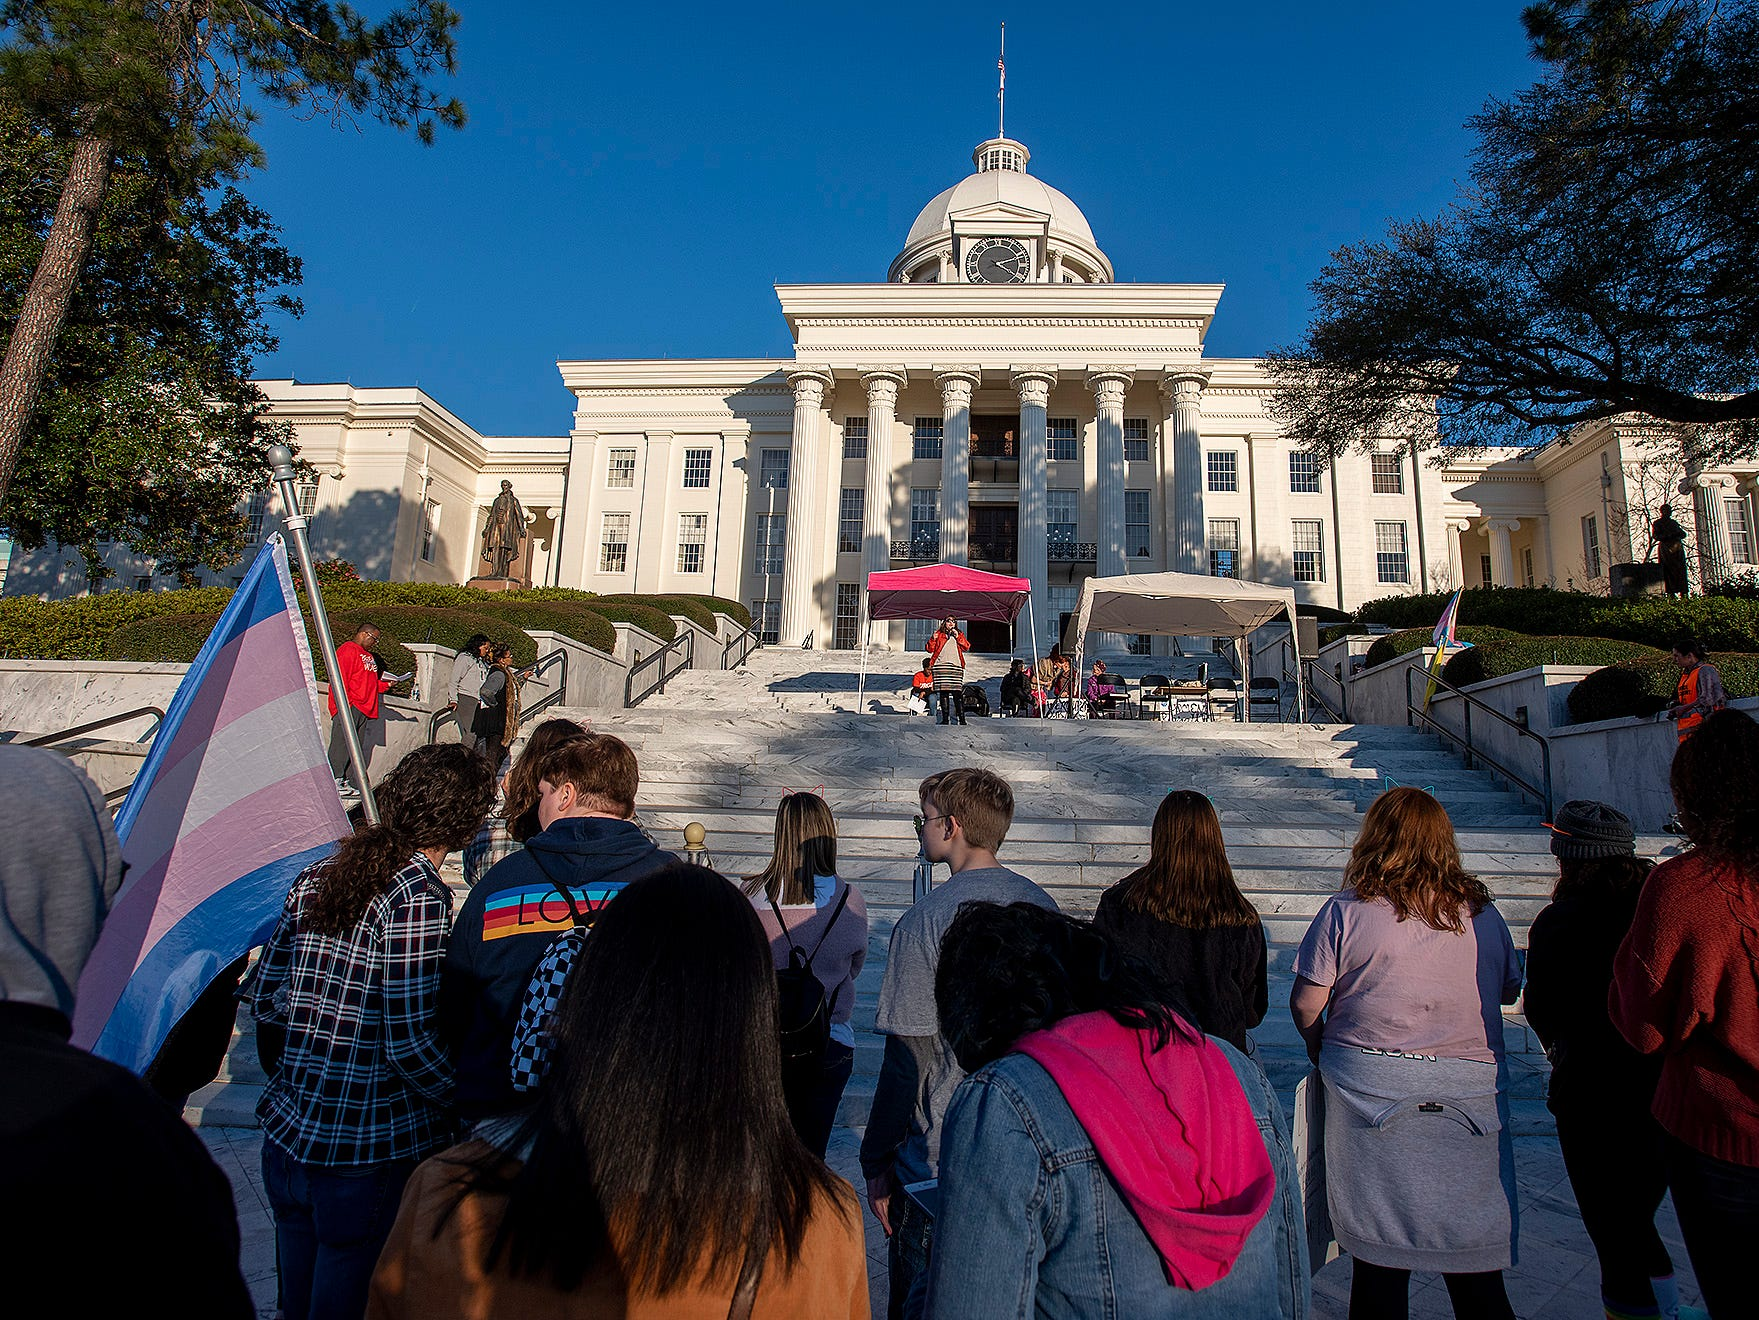 Marchers rally on the steps of the State Capitol Building during the Montgomery Women's March in downtown Montgomery, Ala., on Saturday January 26, 2019.